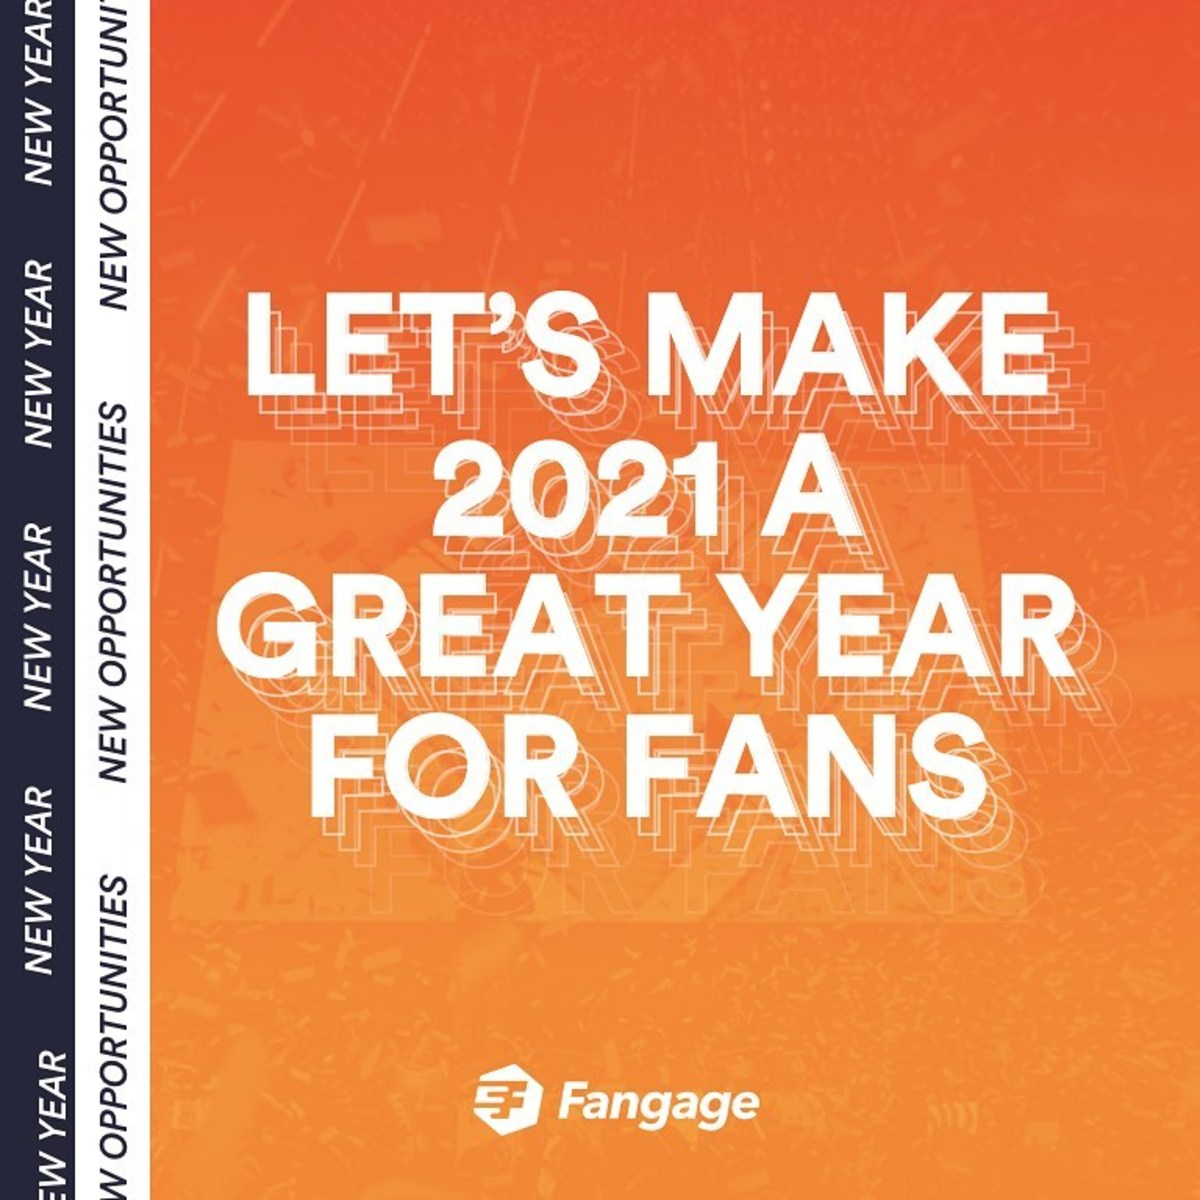 Fangage helps demystify social media algorithms to help artists and brands connect with fans in meaningful and direct ways.